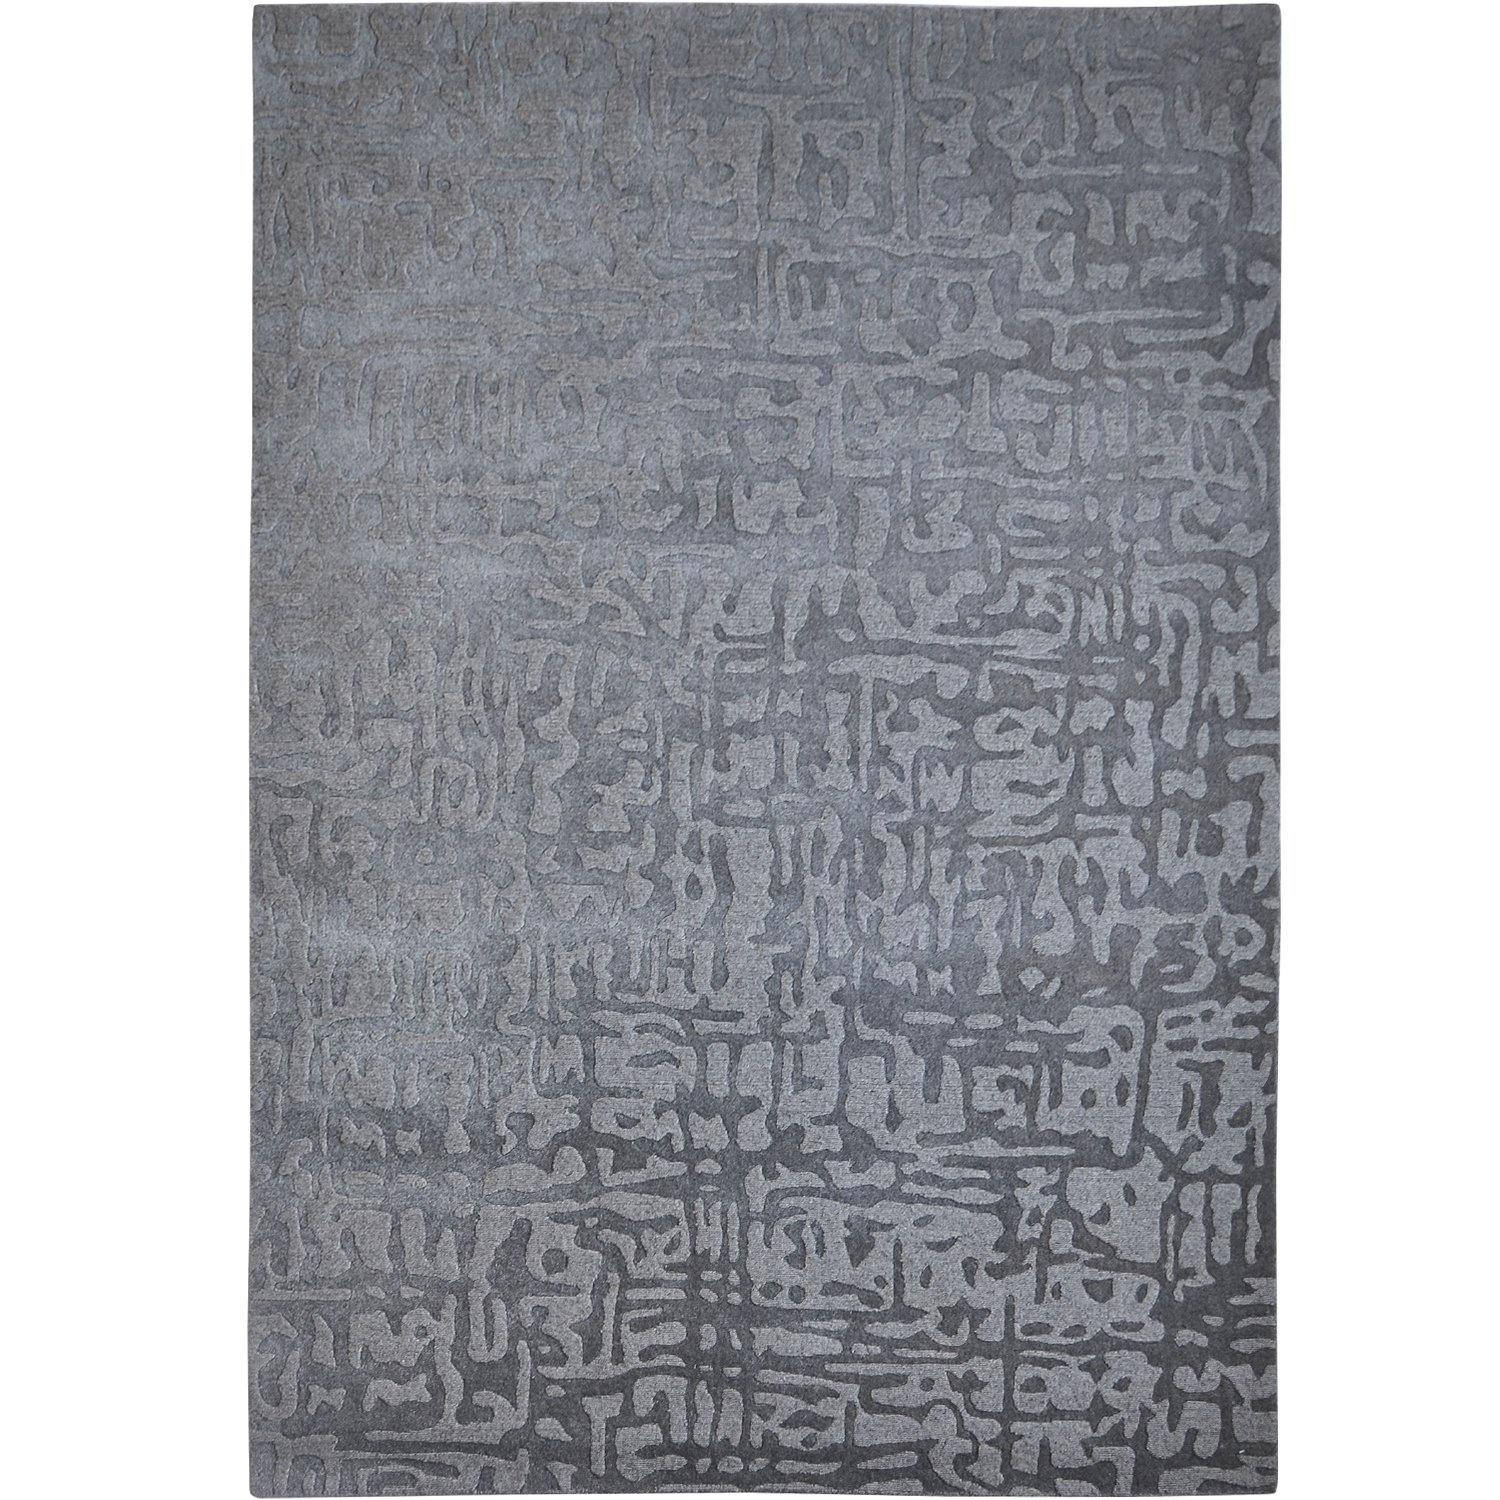 Contemporary Fine Hand-knotted Wool Rug 180cm x 276cm Persian-Rug | House-of-Haghi | NewMarket | Auckland | NZ | Handmade Persian Rugs | Hand Knotted Persian Rugs